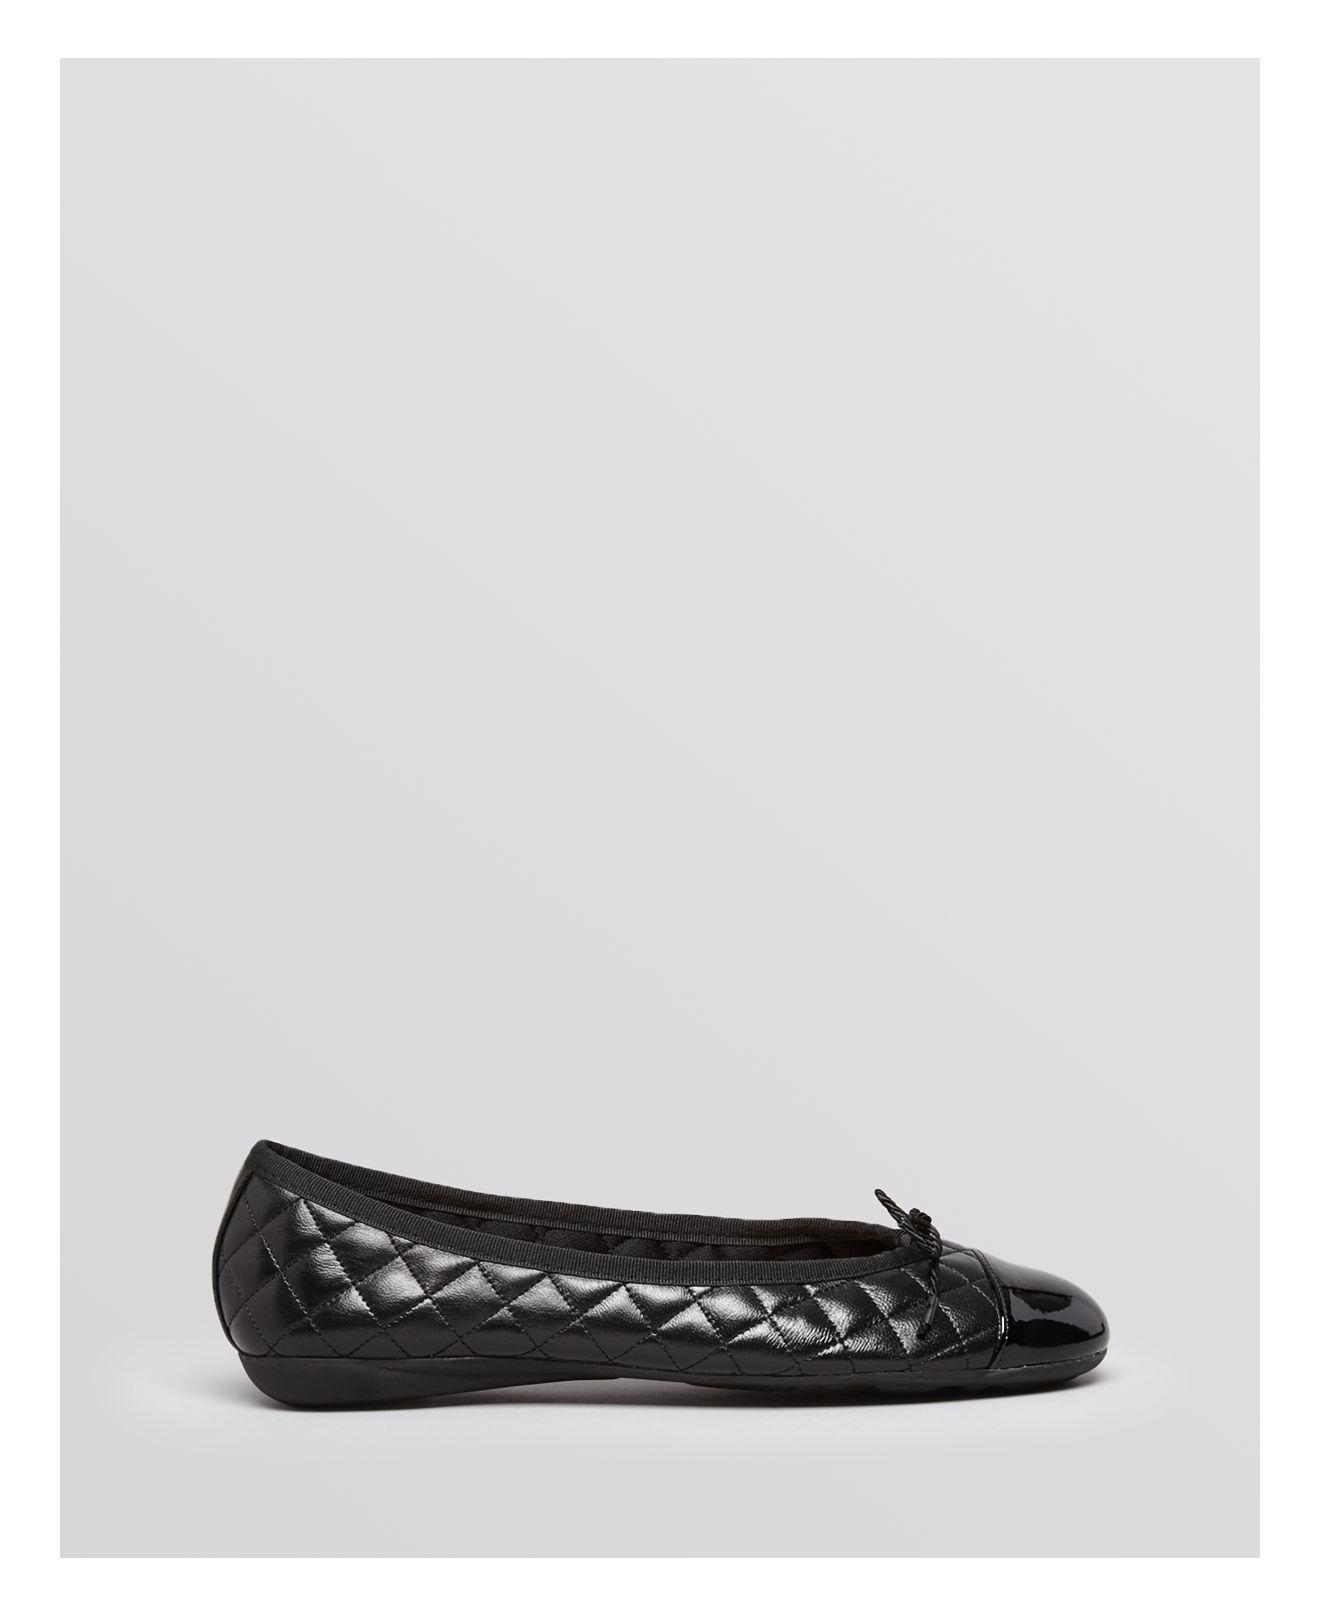 Lyst - Paul Mayer Best Quilted Leather Patent Cap Toe ...